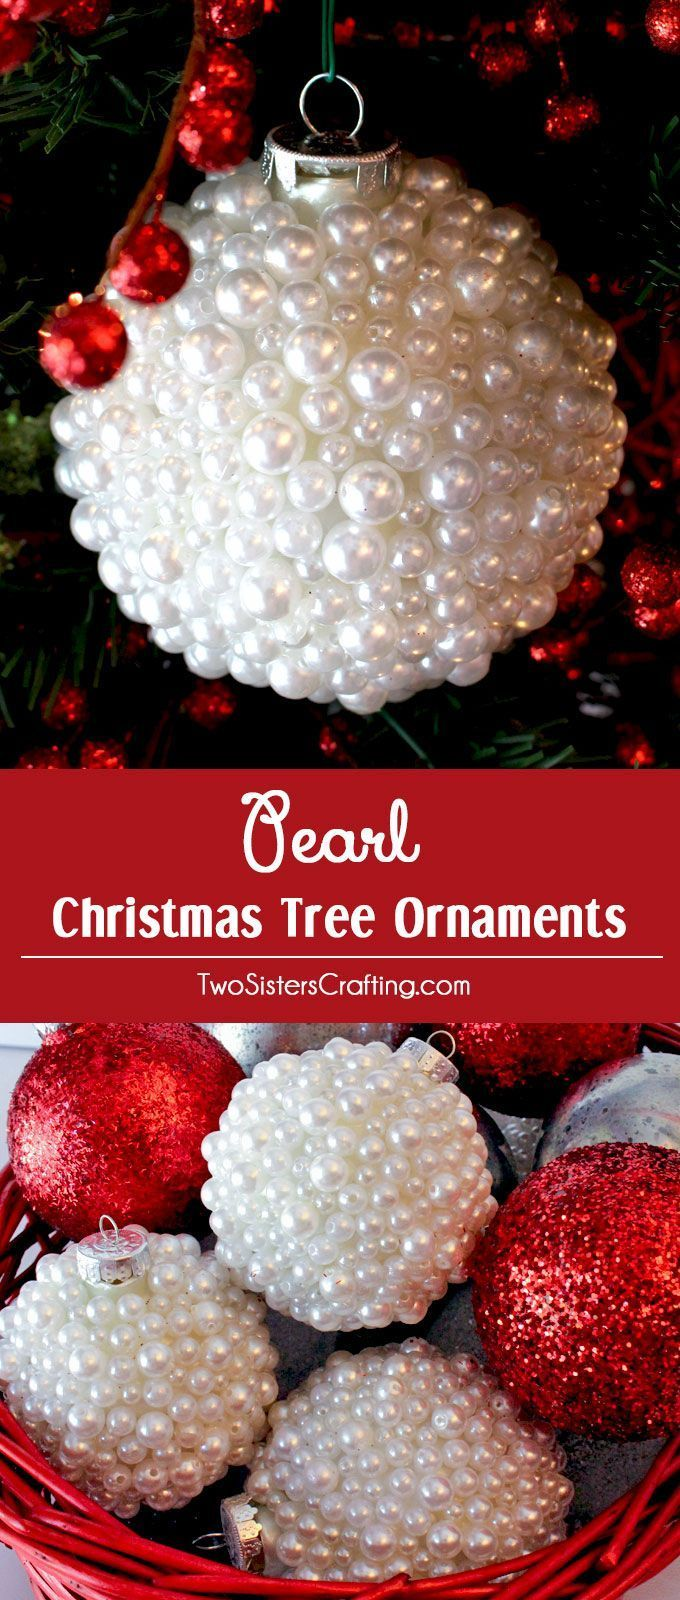 The 25 best fun diy ideas on pinterest fun diy crafts for Christmas tree decorations you can make at home